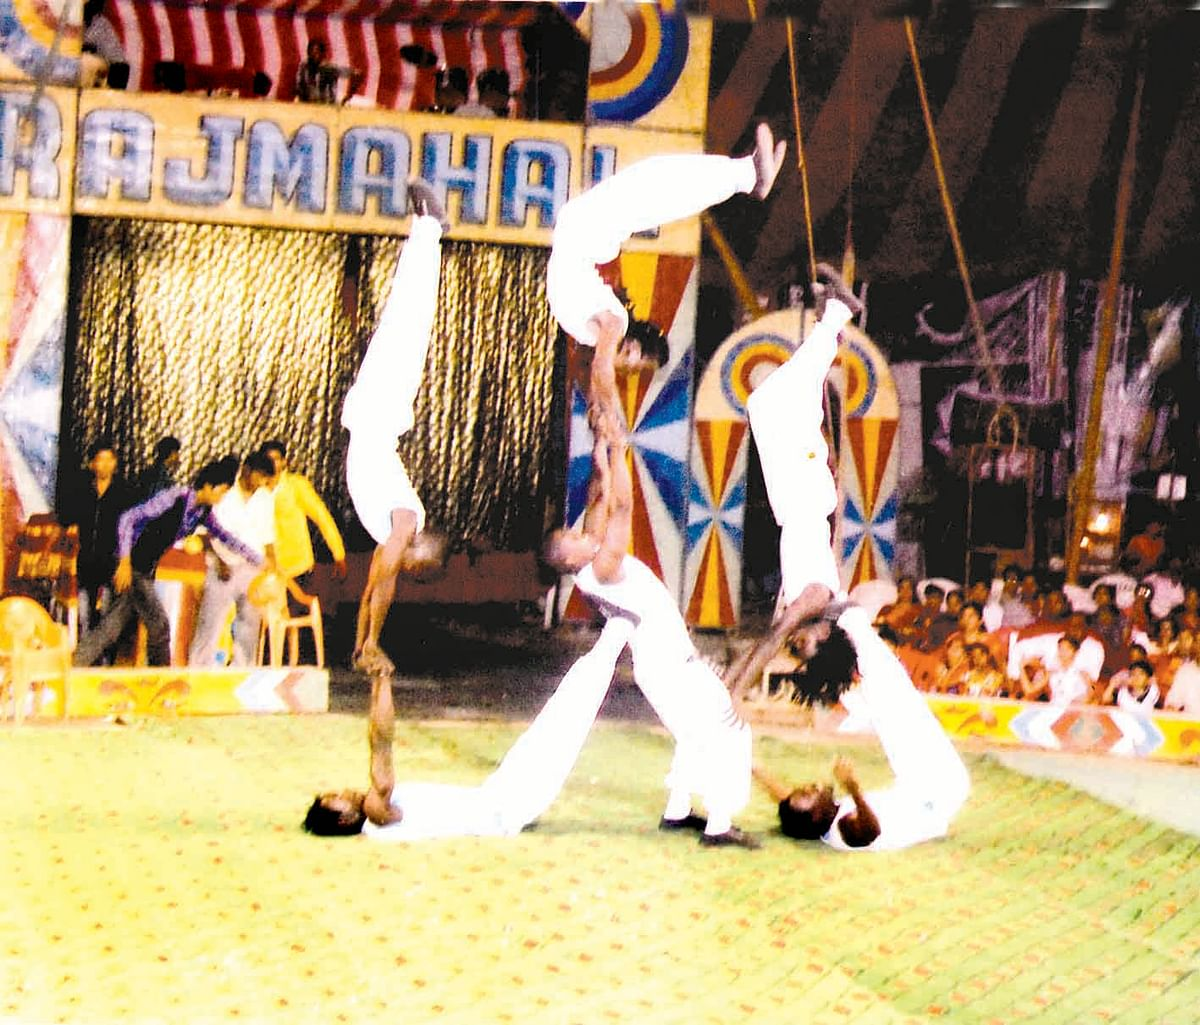 Circus stunts enthrall audience